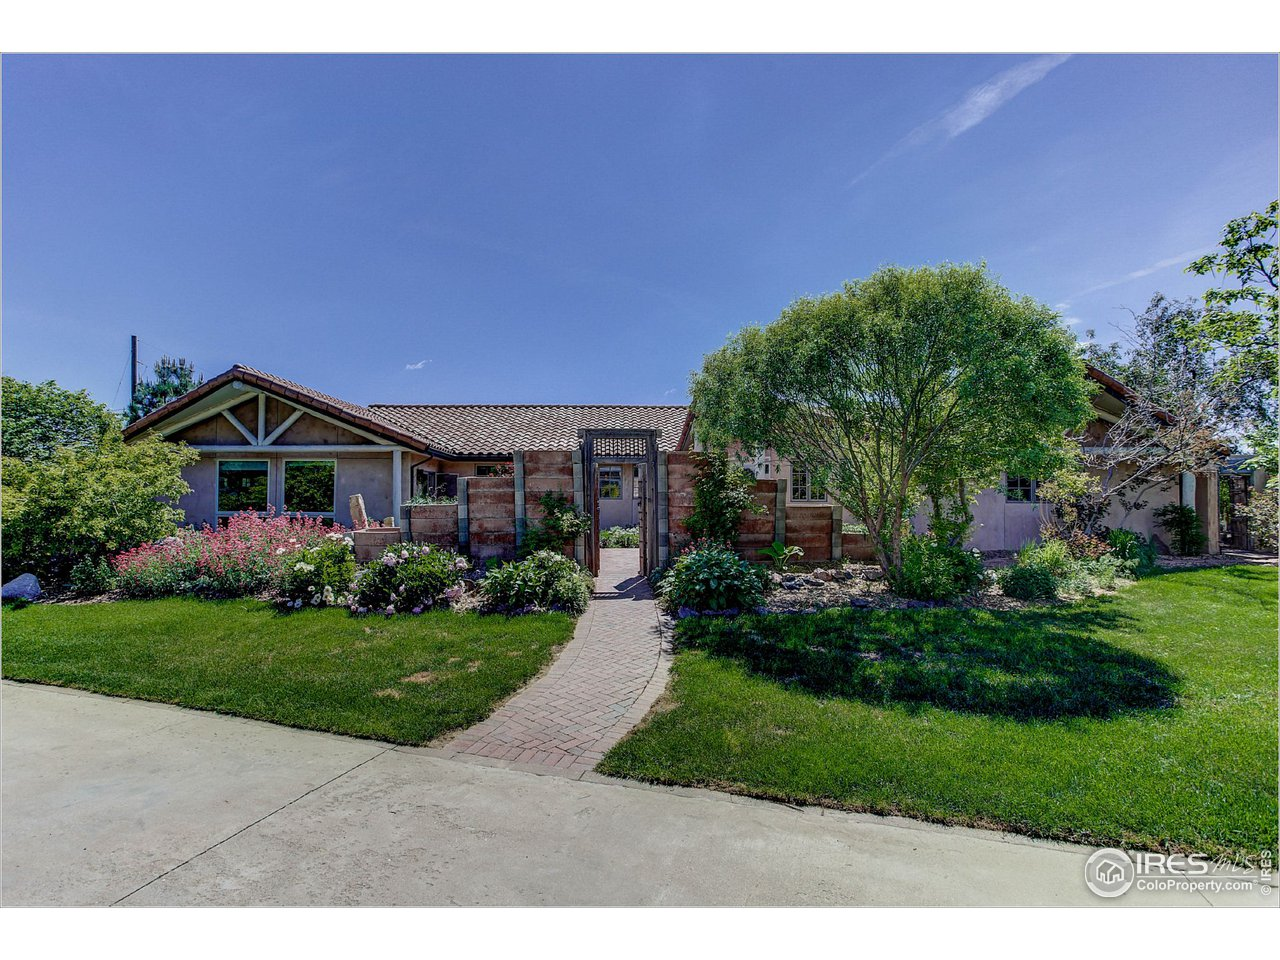 14534 Fenton St, Broomfield CO 80020